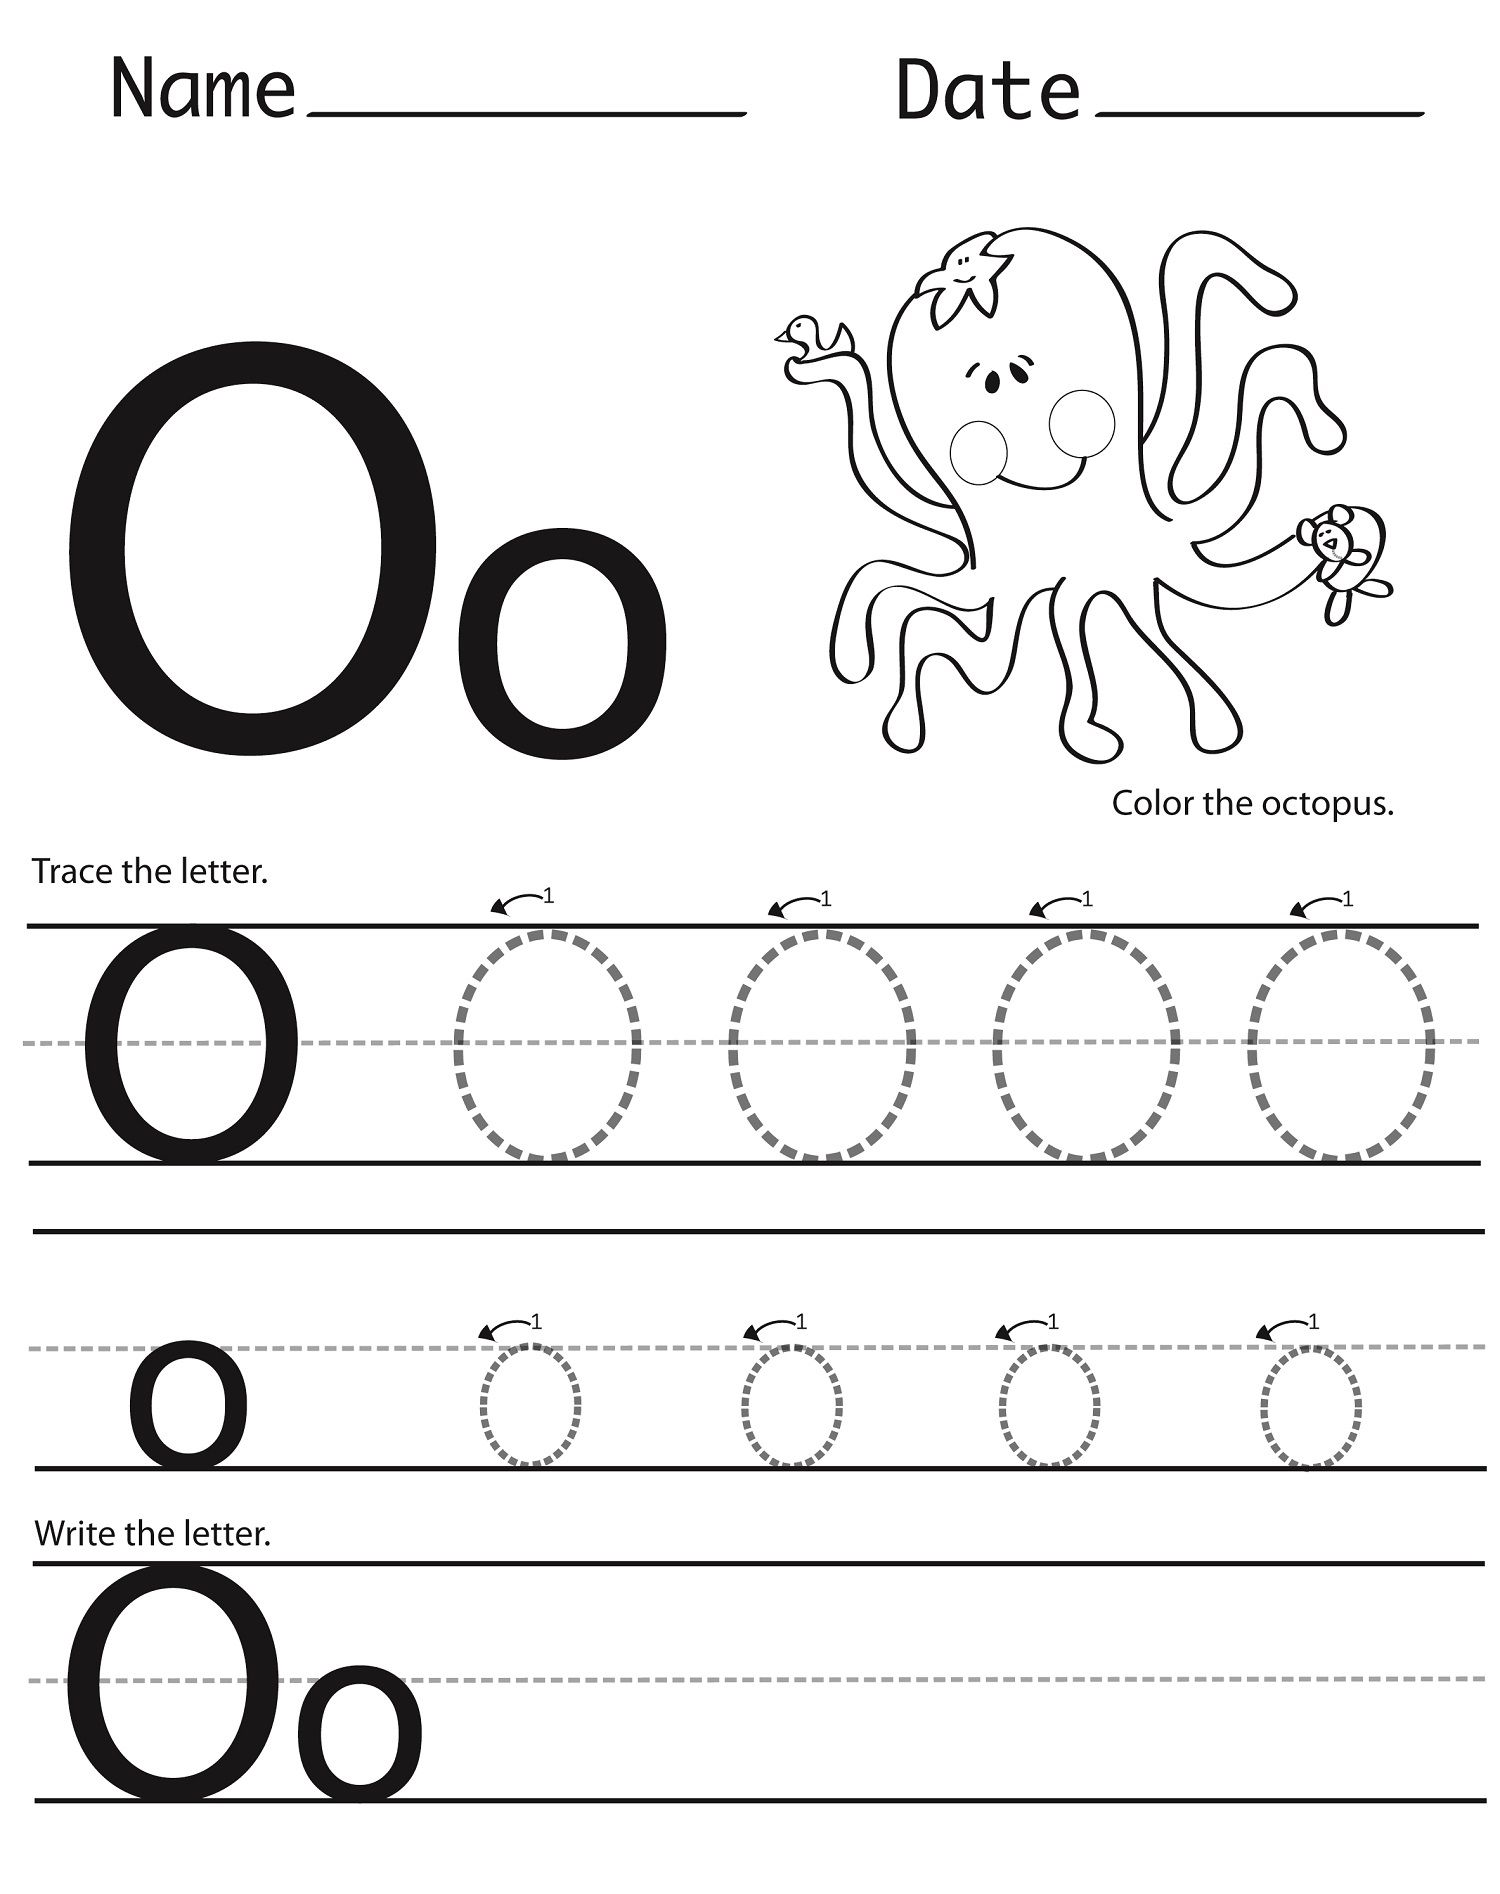 image relating to Printable Letter O identified as 12 Interesting Letter O Worksheets